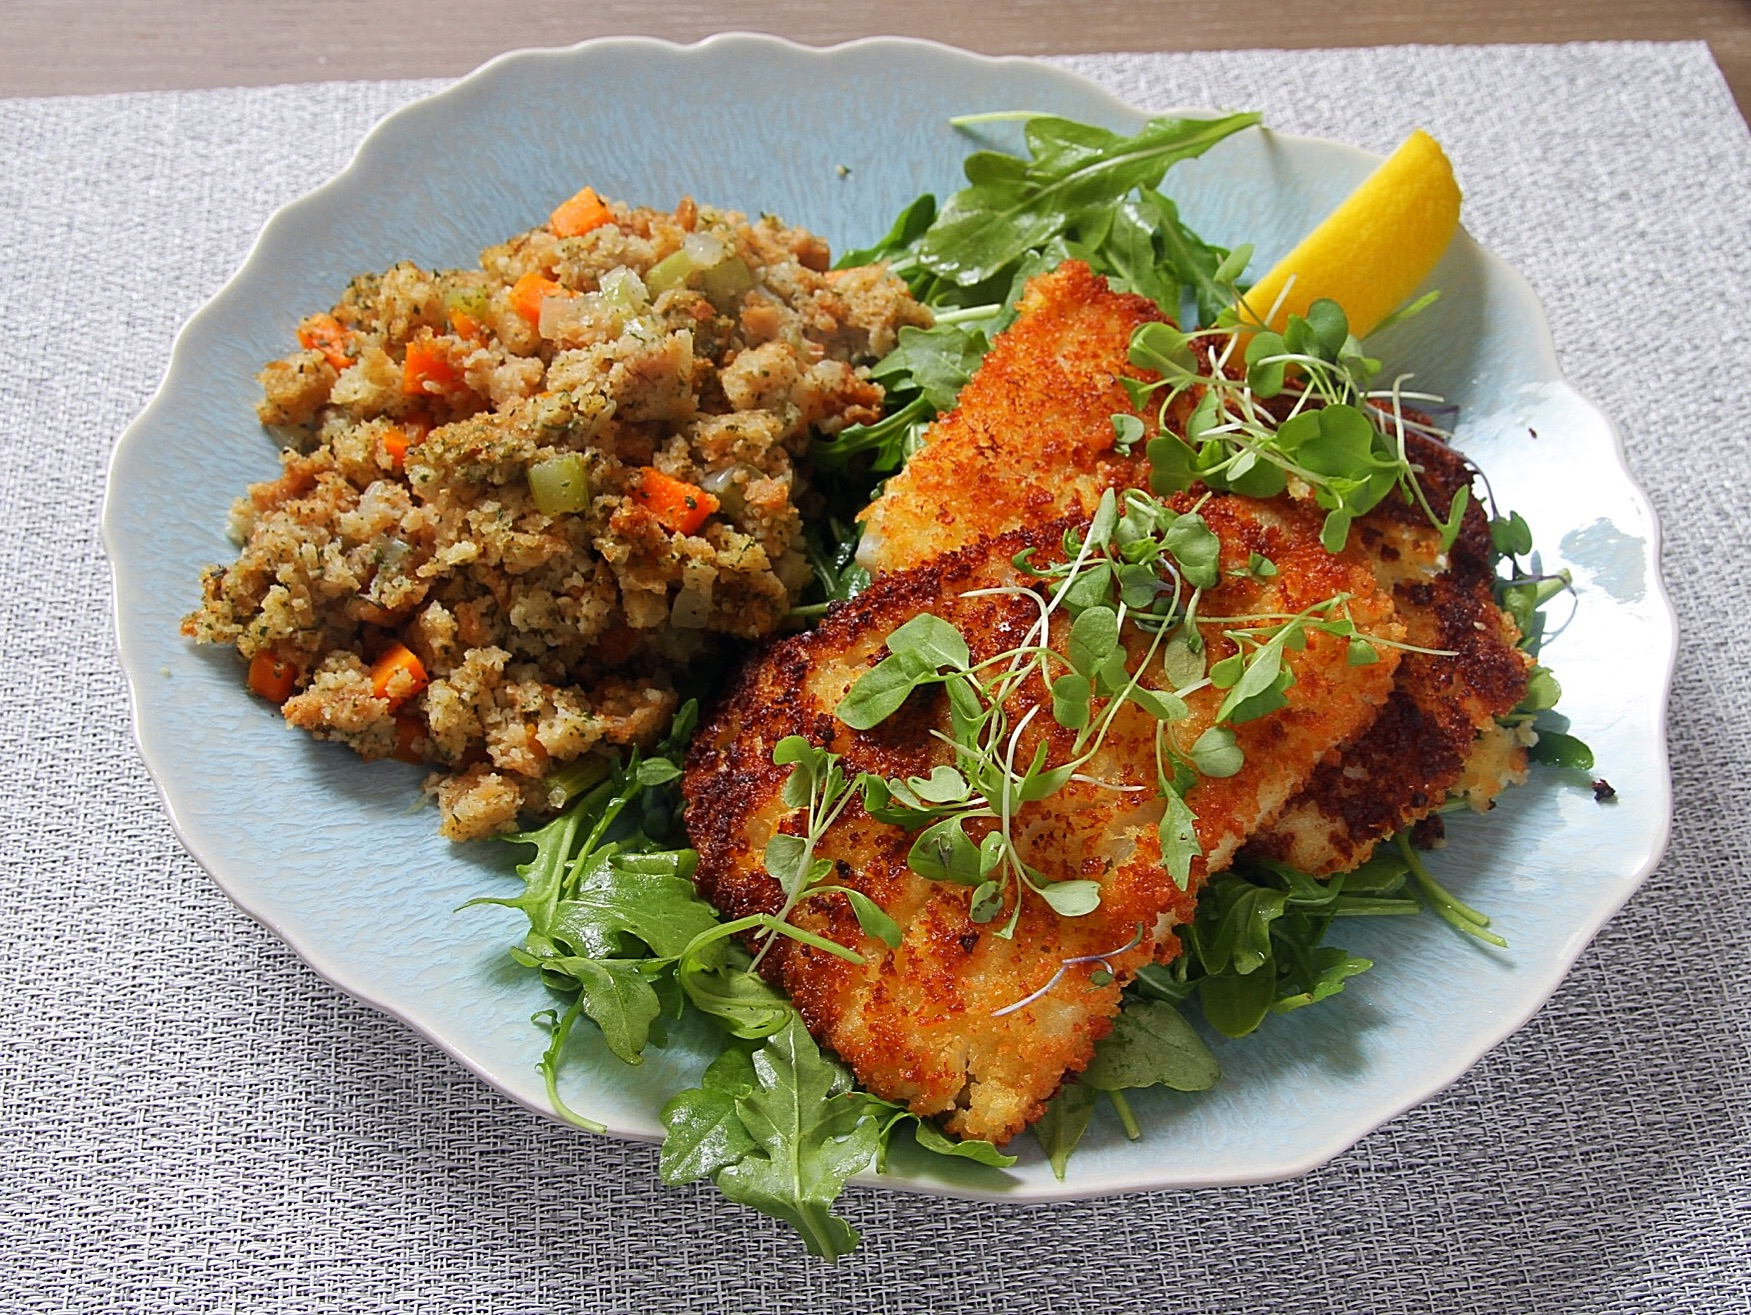 Panko-fried cod with GF savory stuffing from Aleia's Artisan Foods, served over arugula salad.